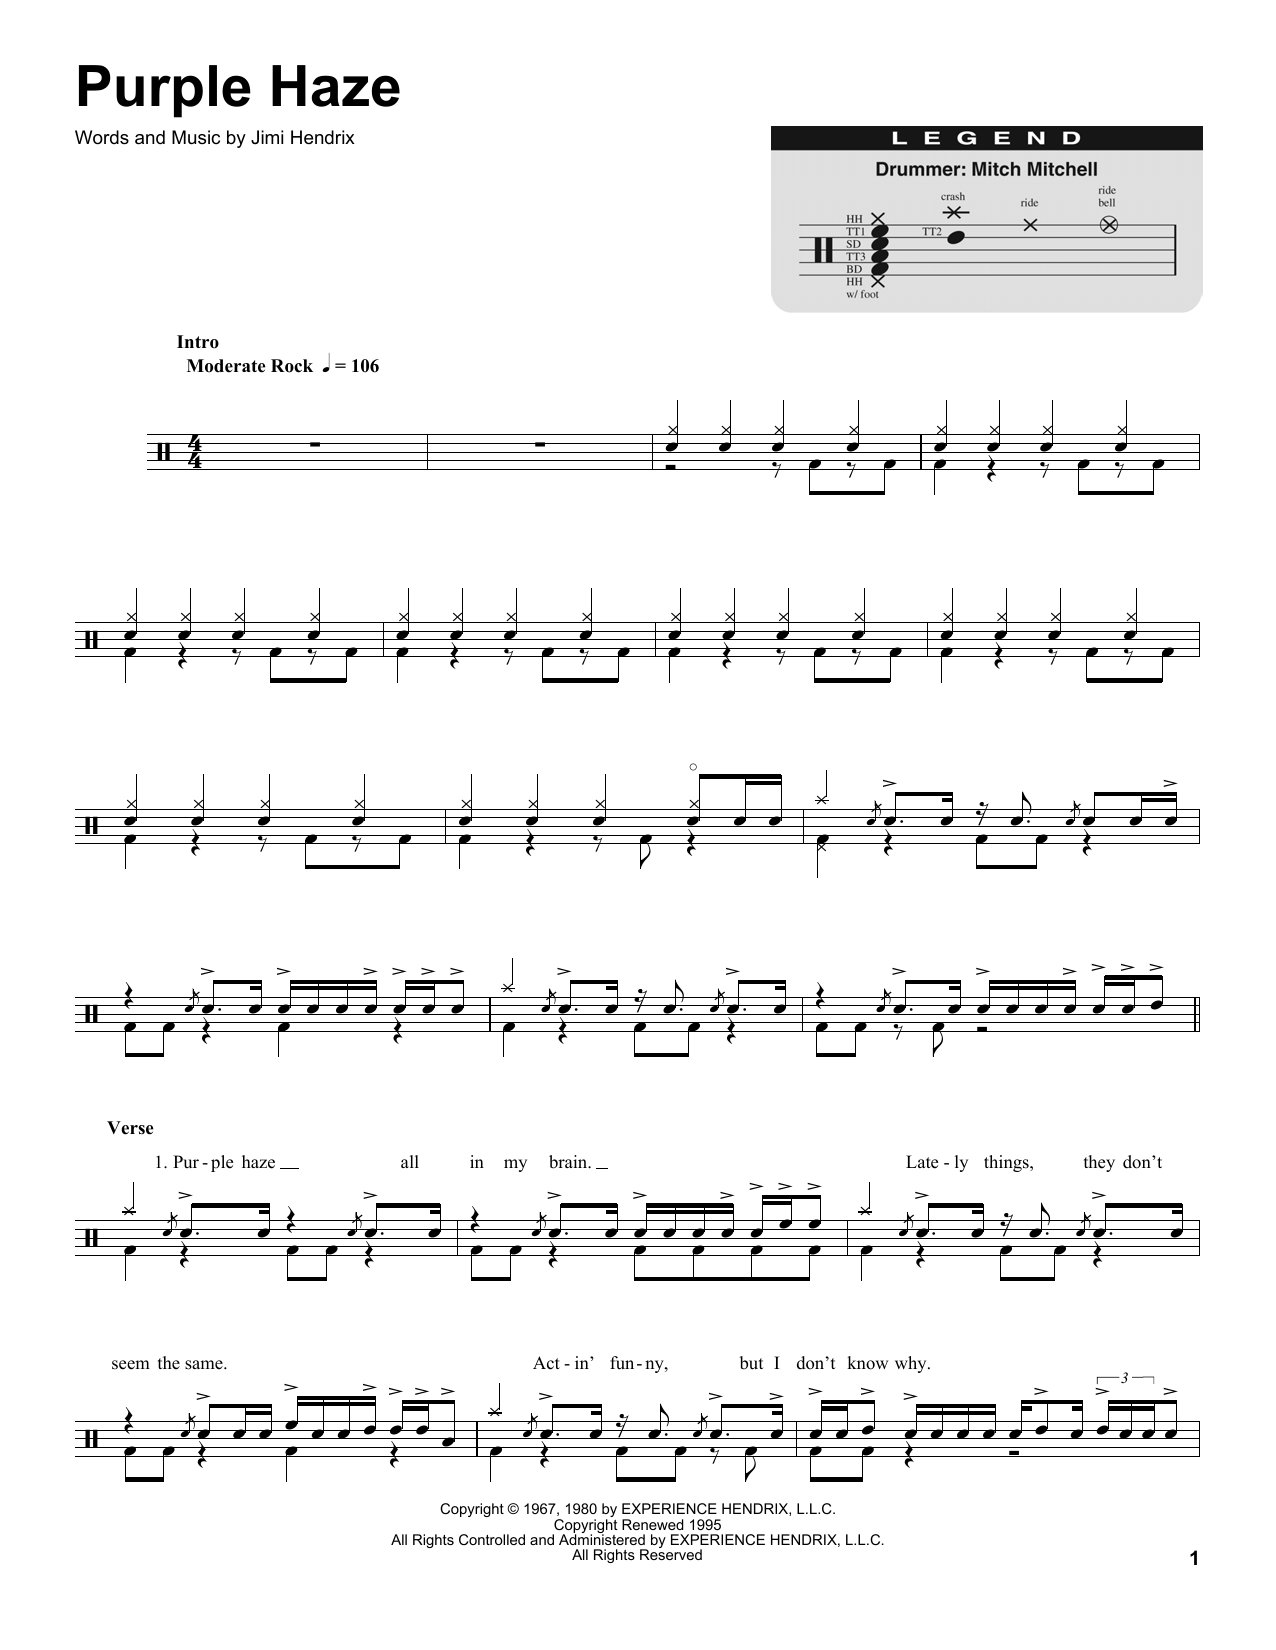 Purple Haze Sheet Music